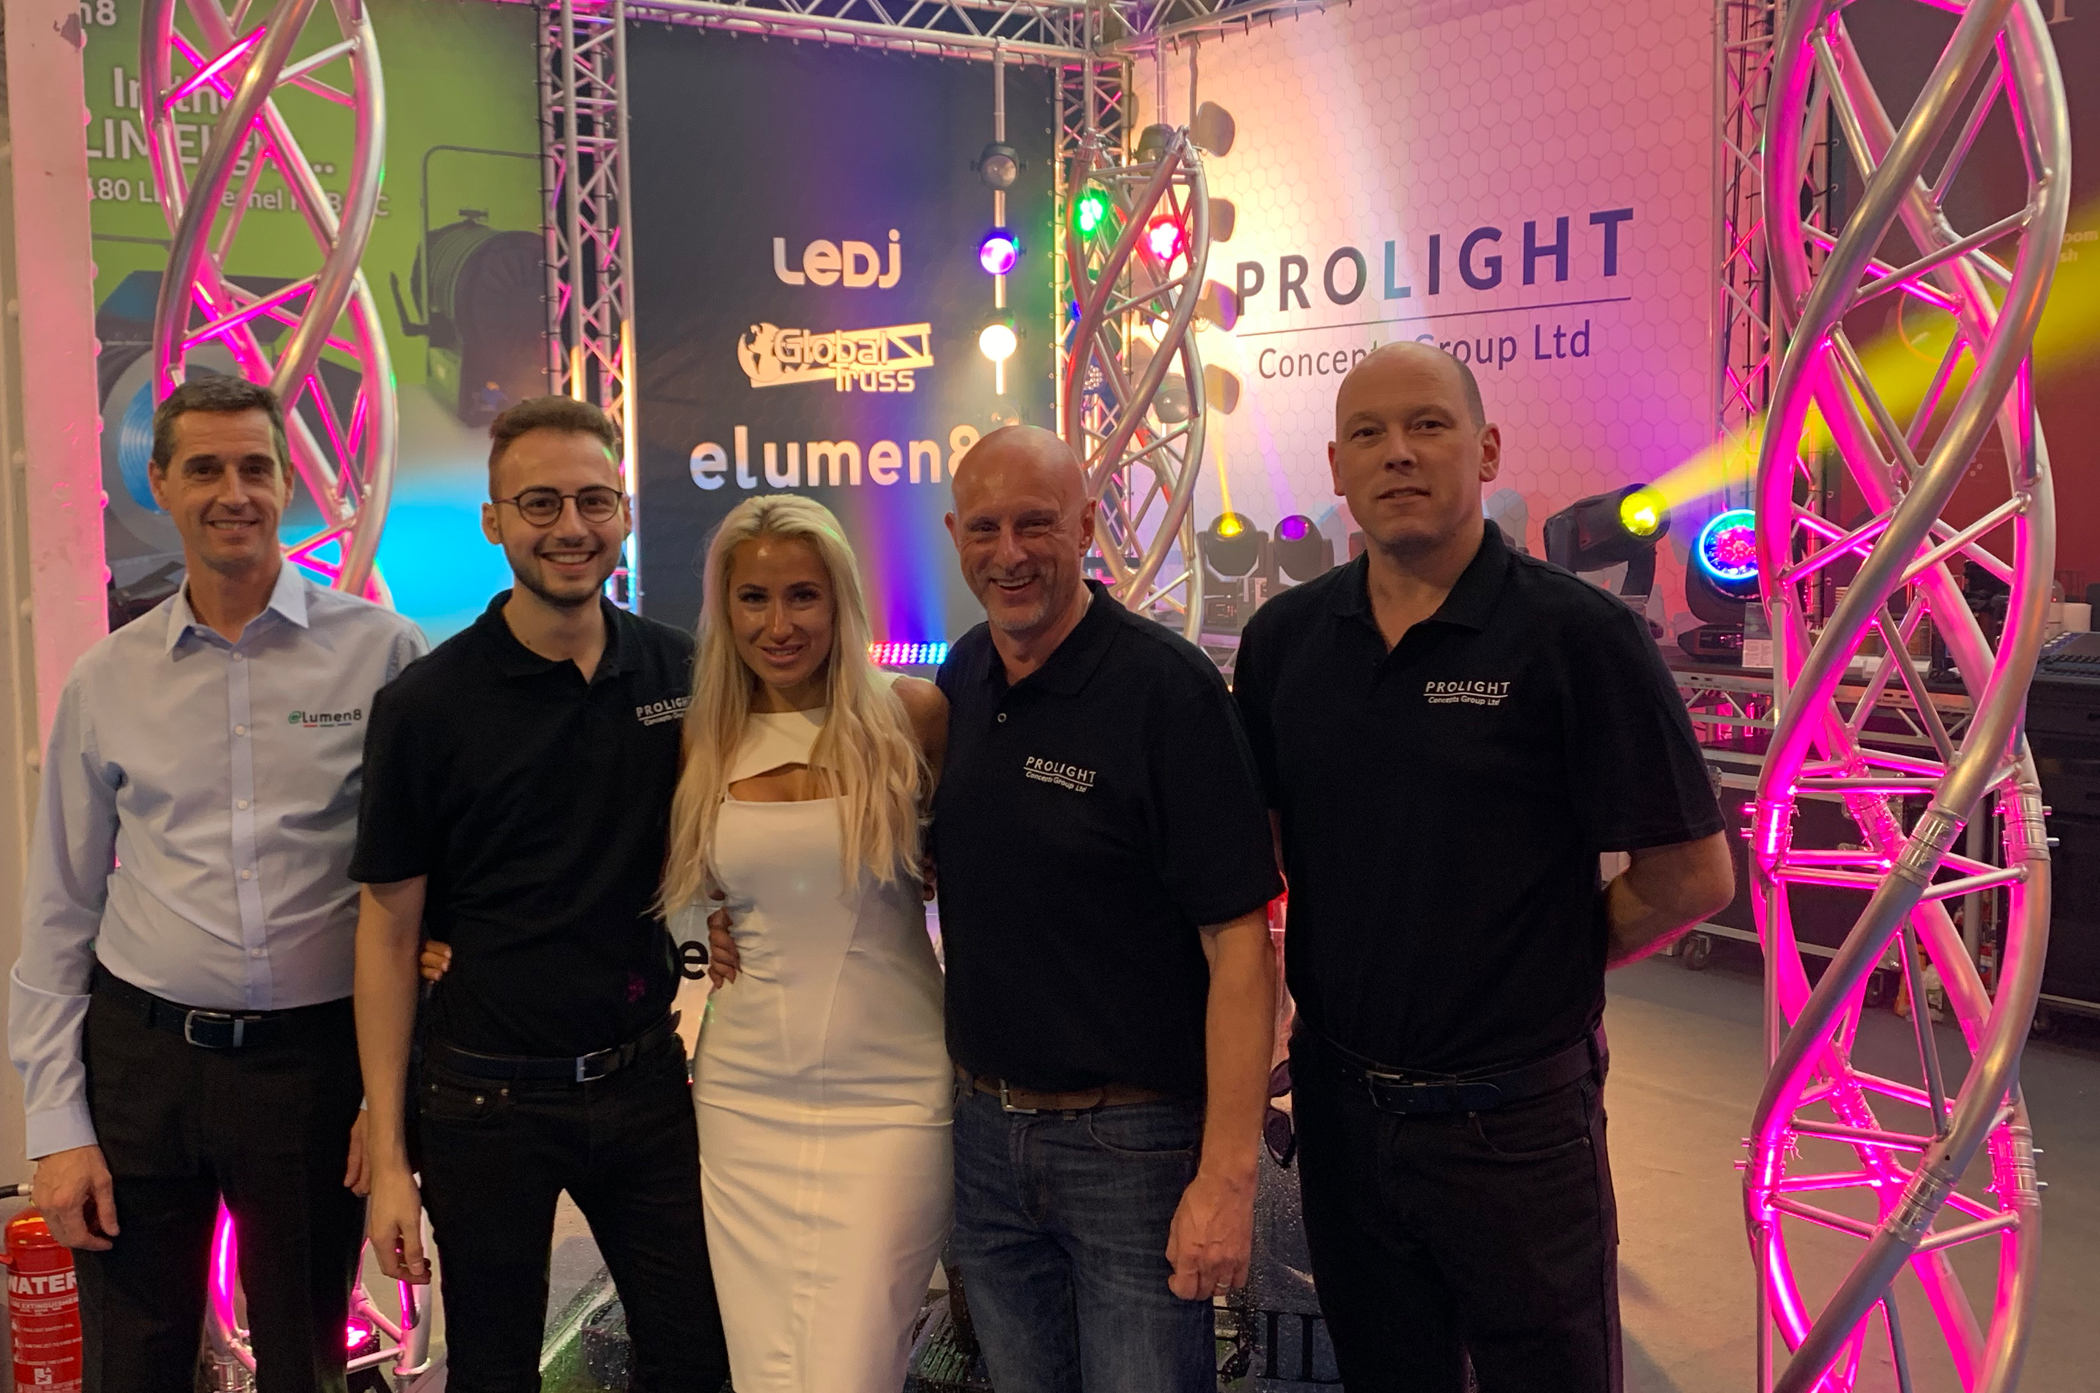 Prolight WOW @ Plasa!